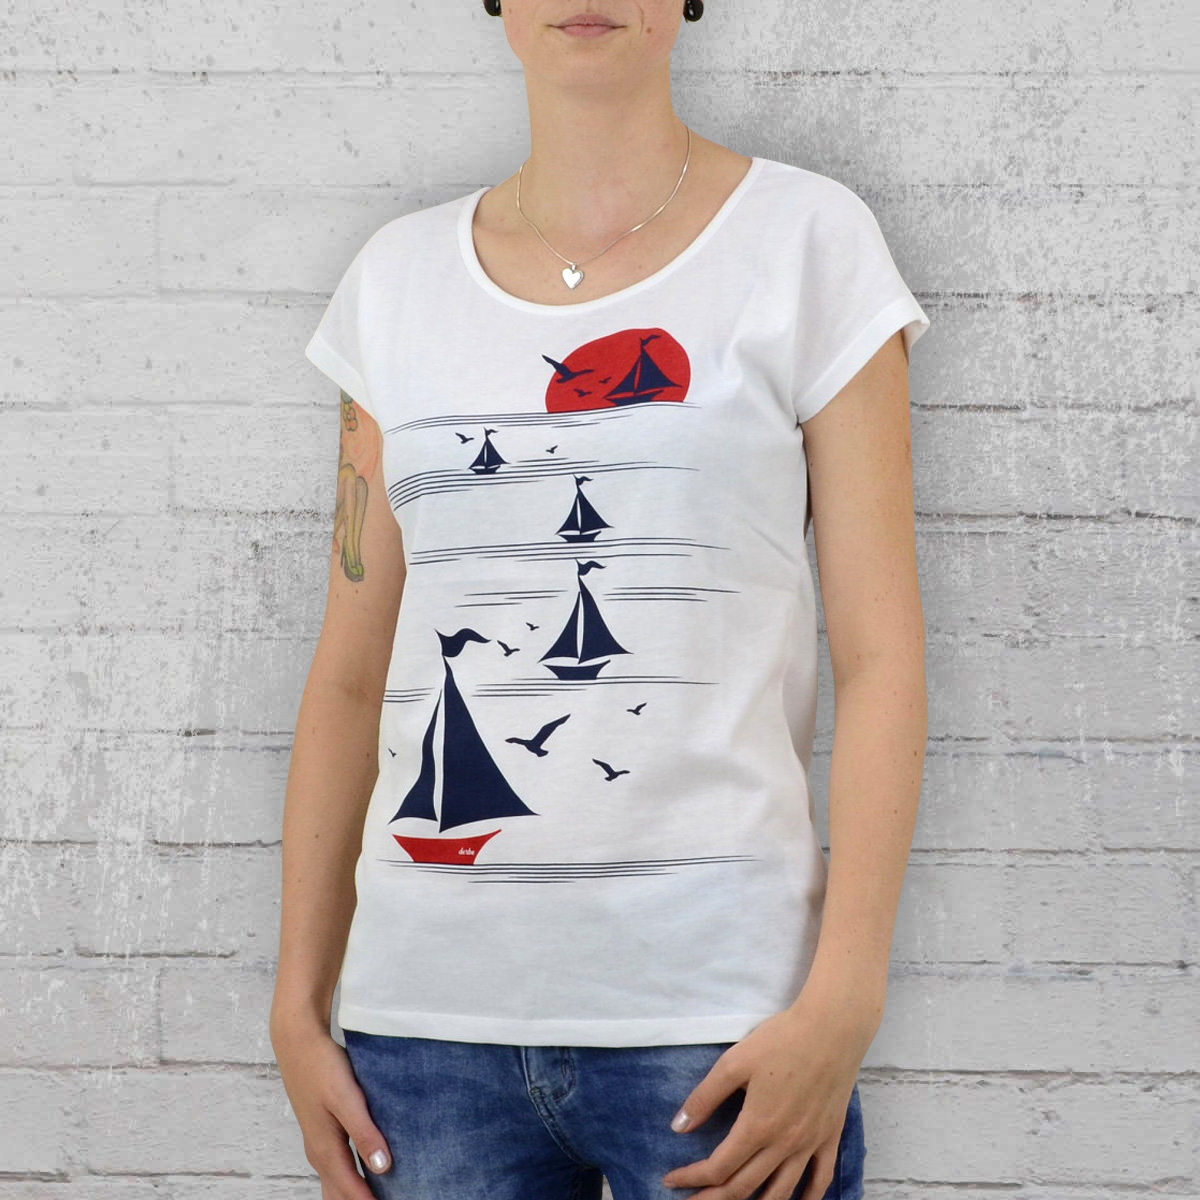 order now derbe ladies t shirt sail away white. Black Bedroom Furniture Sets. Home Design Ideas